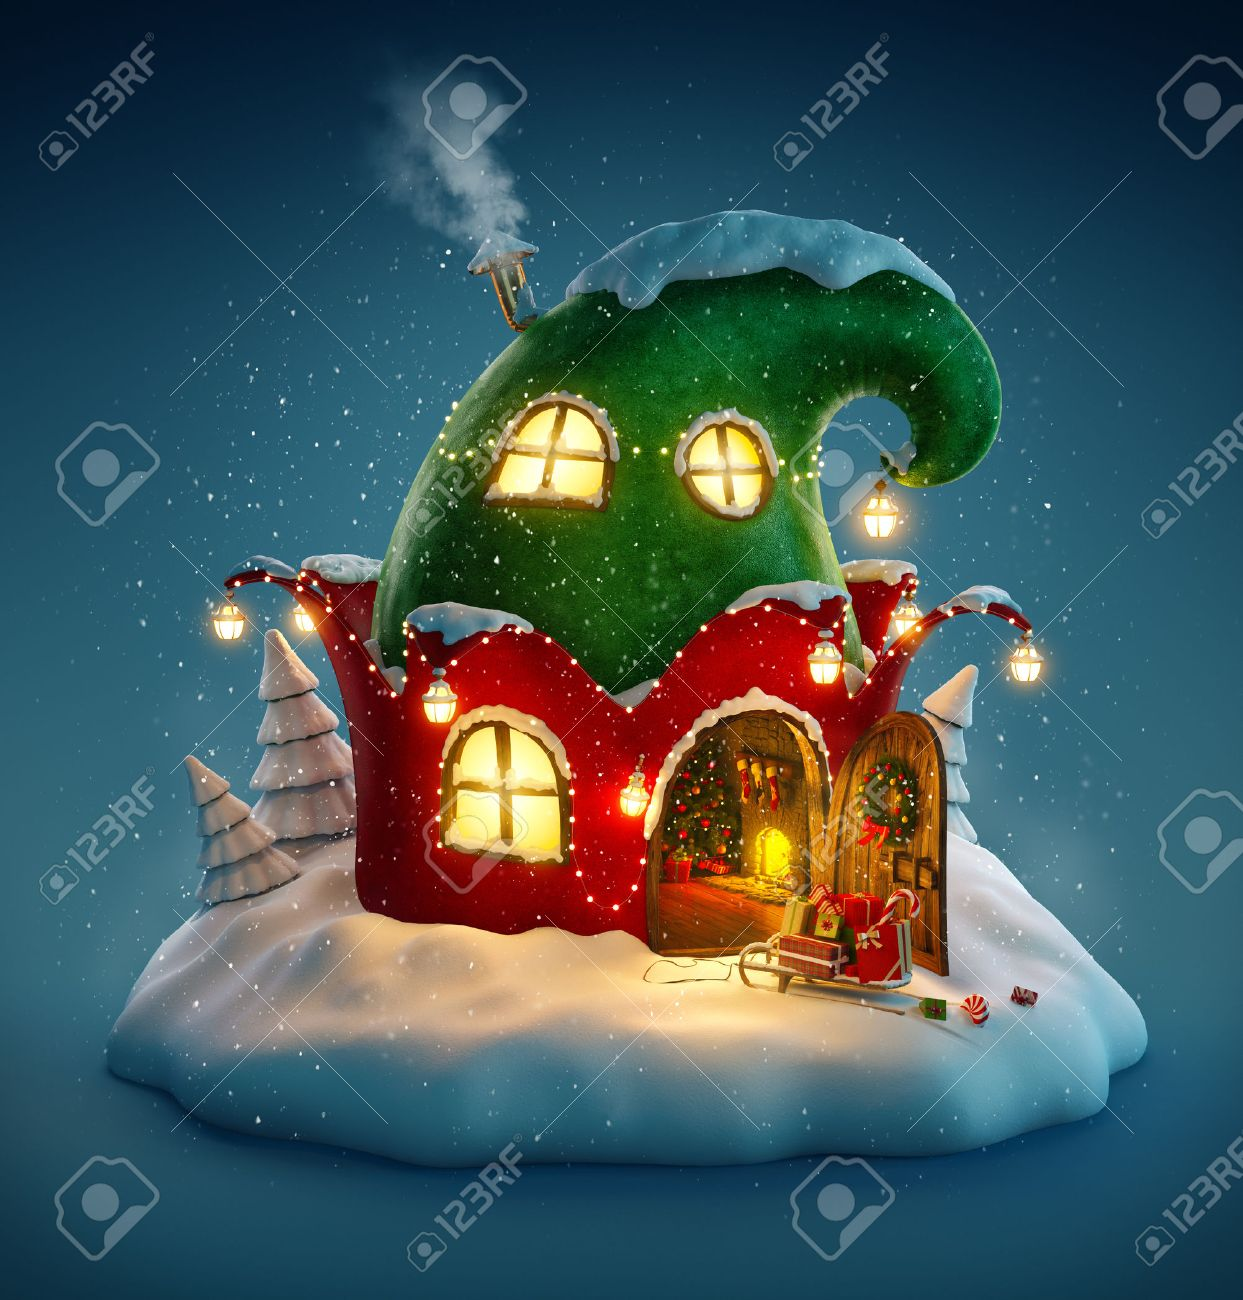 Amazing fairy house decorated at christmas in shape of elfs hat with opened door and fireplace inside. Unusual christmas illustration. Stock Illustration - 46798617